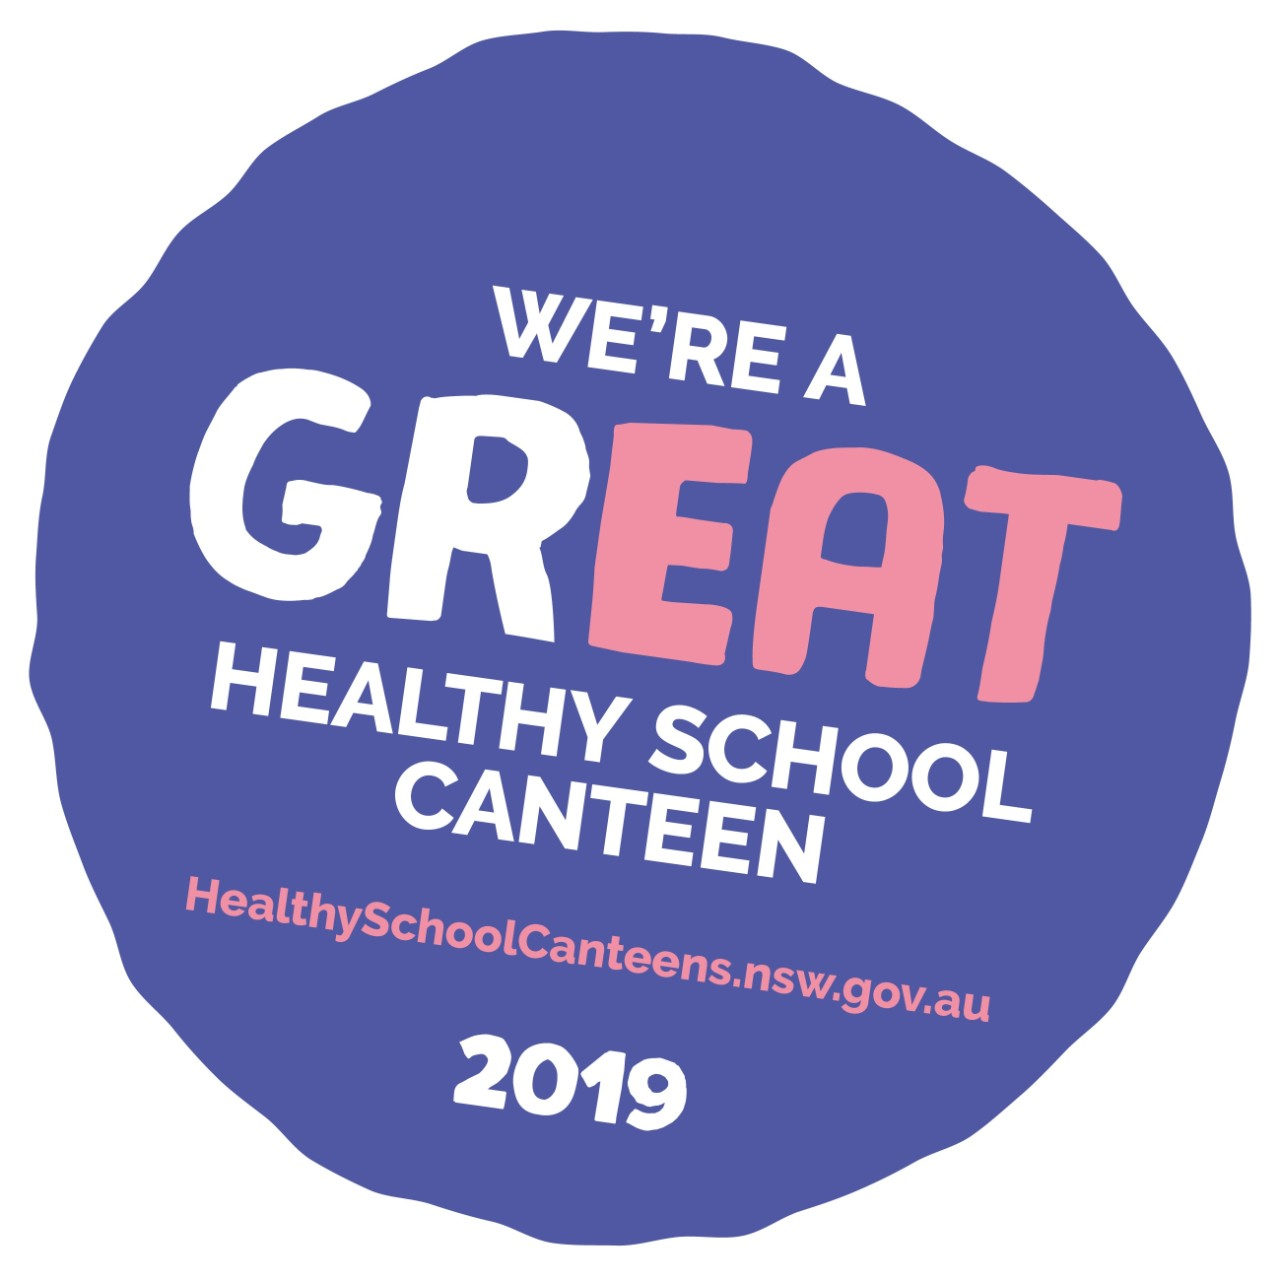 Great news! Kurmond Public School's canteen has met the requirements of the NSW Healthy School Canteen Strategy.